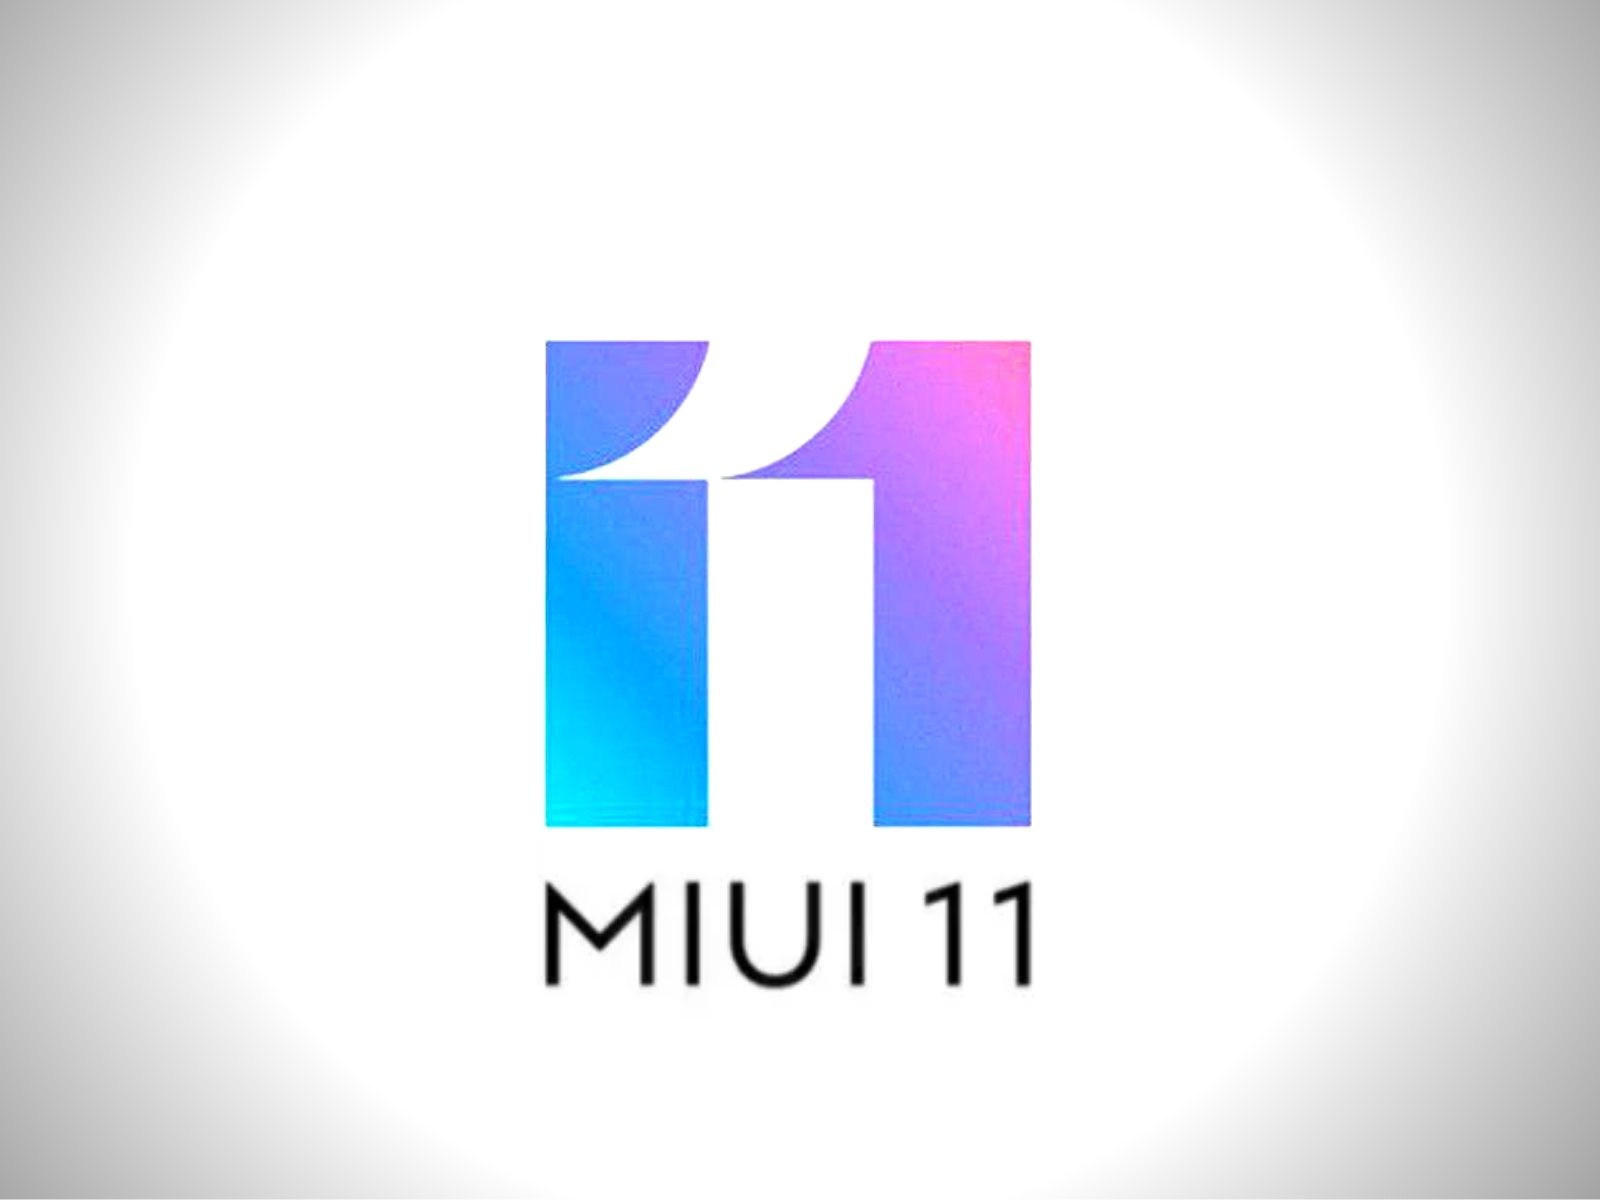 Xiaomi Will Start Deploying Miui 11 Update On This Date Revick